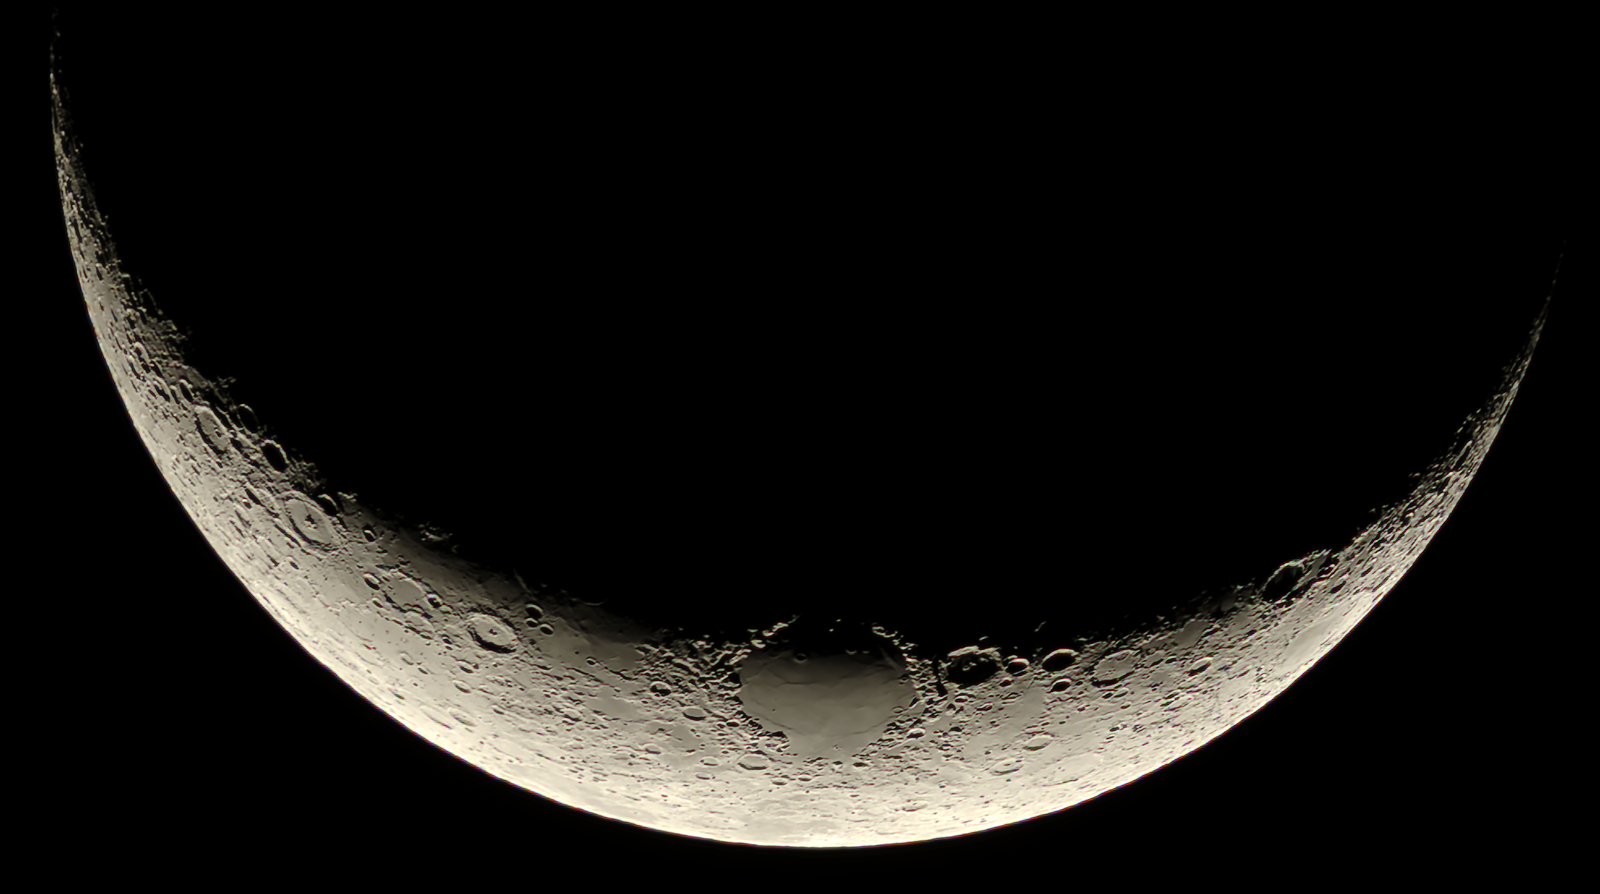 Lune17122020.png